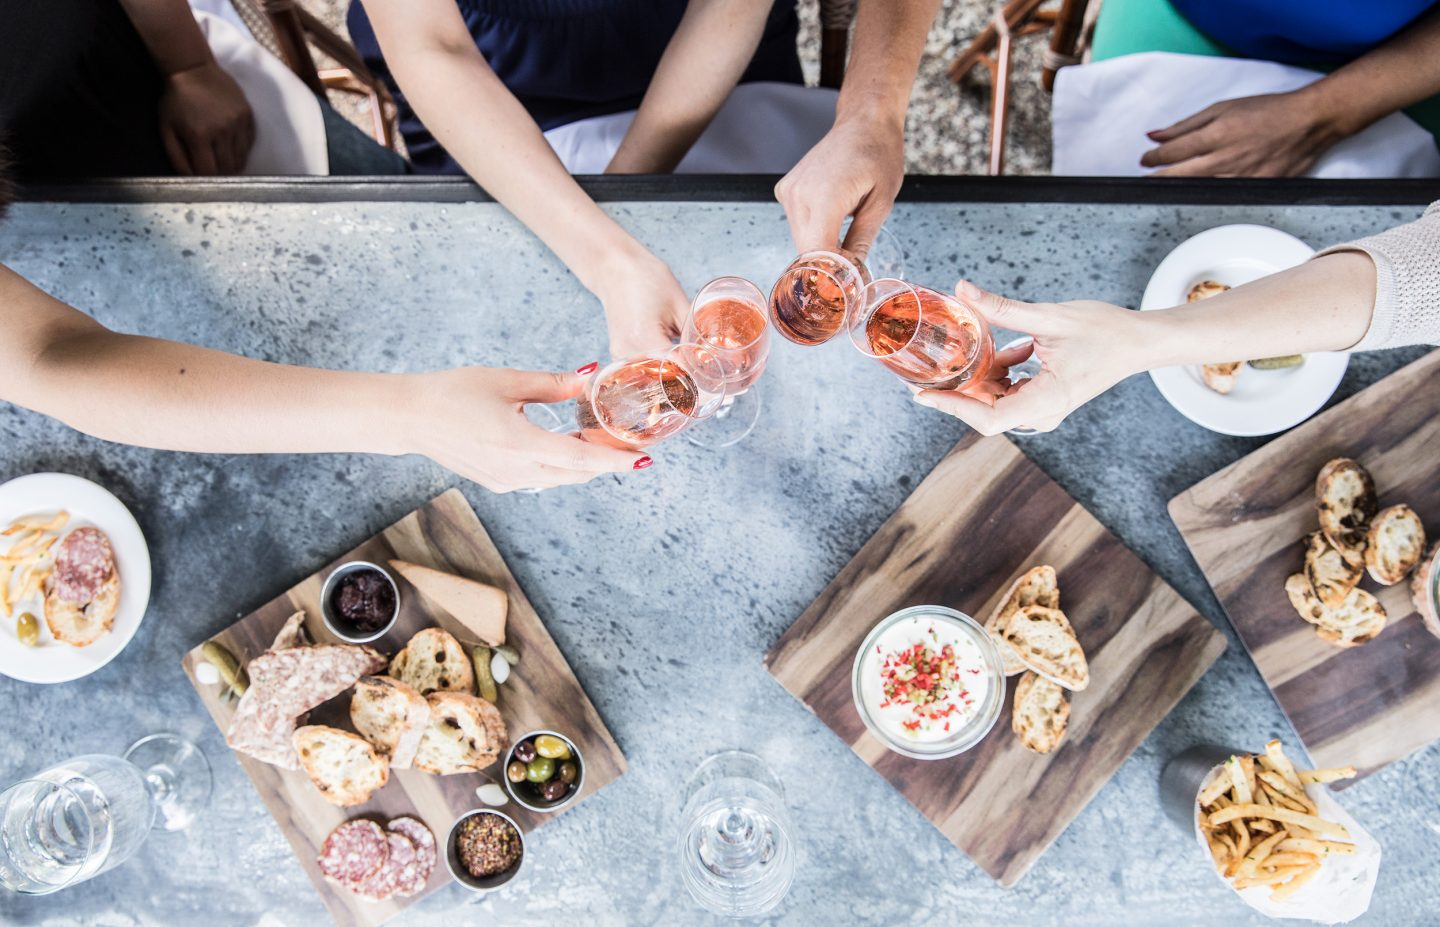 sparkling rose & charcuterie overhead